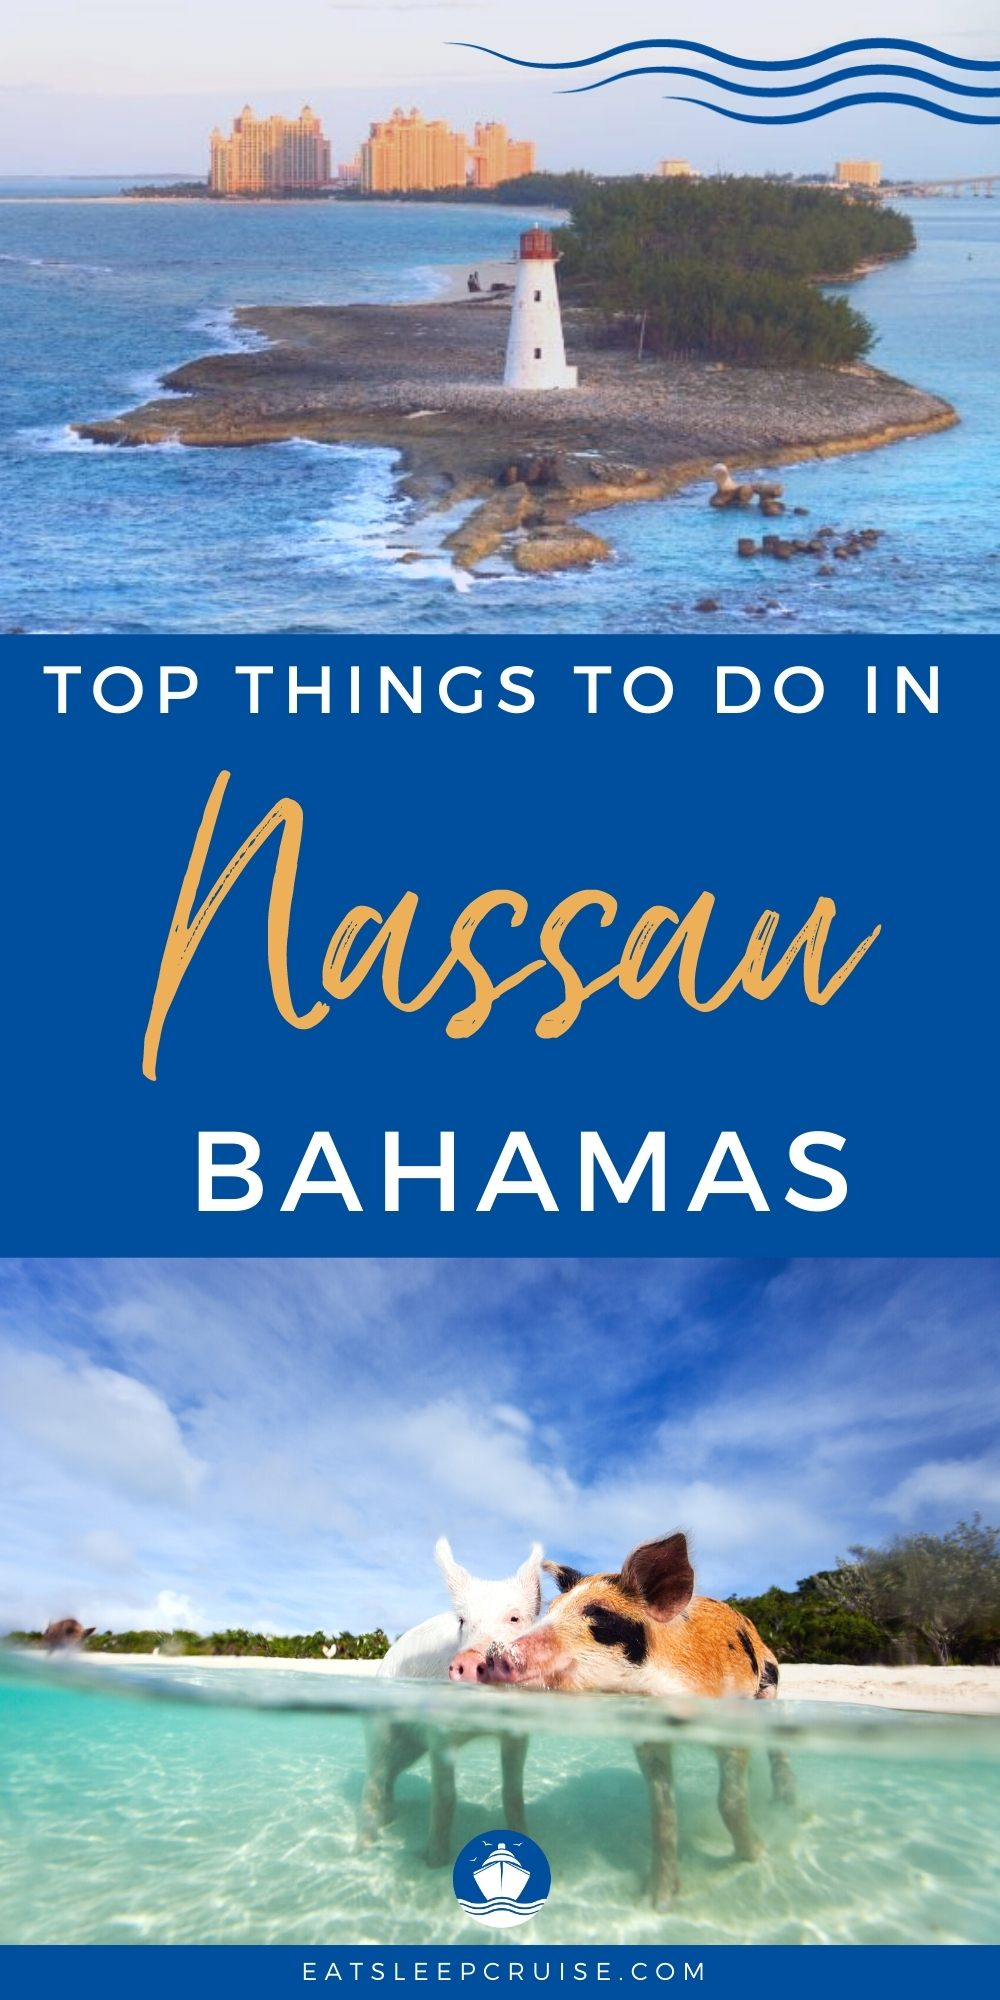 If you are visiting the Bahamas this summer, have a look at our list of the Best Things to Do in Nassau, Bahamas on a Cruise (2021).